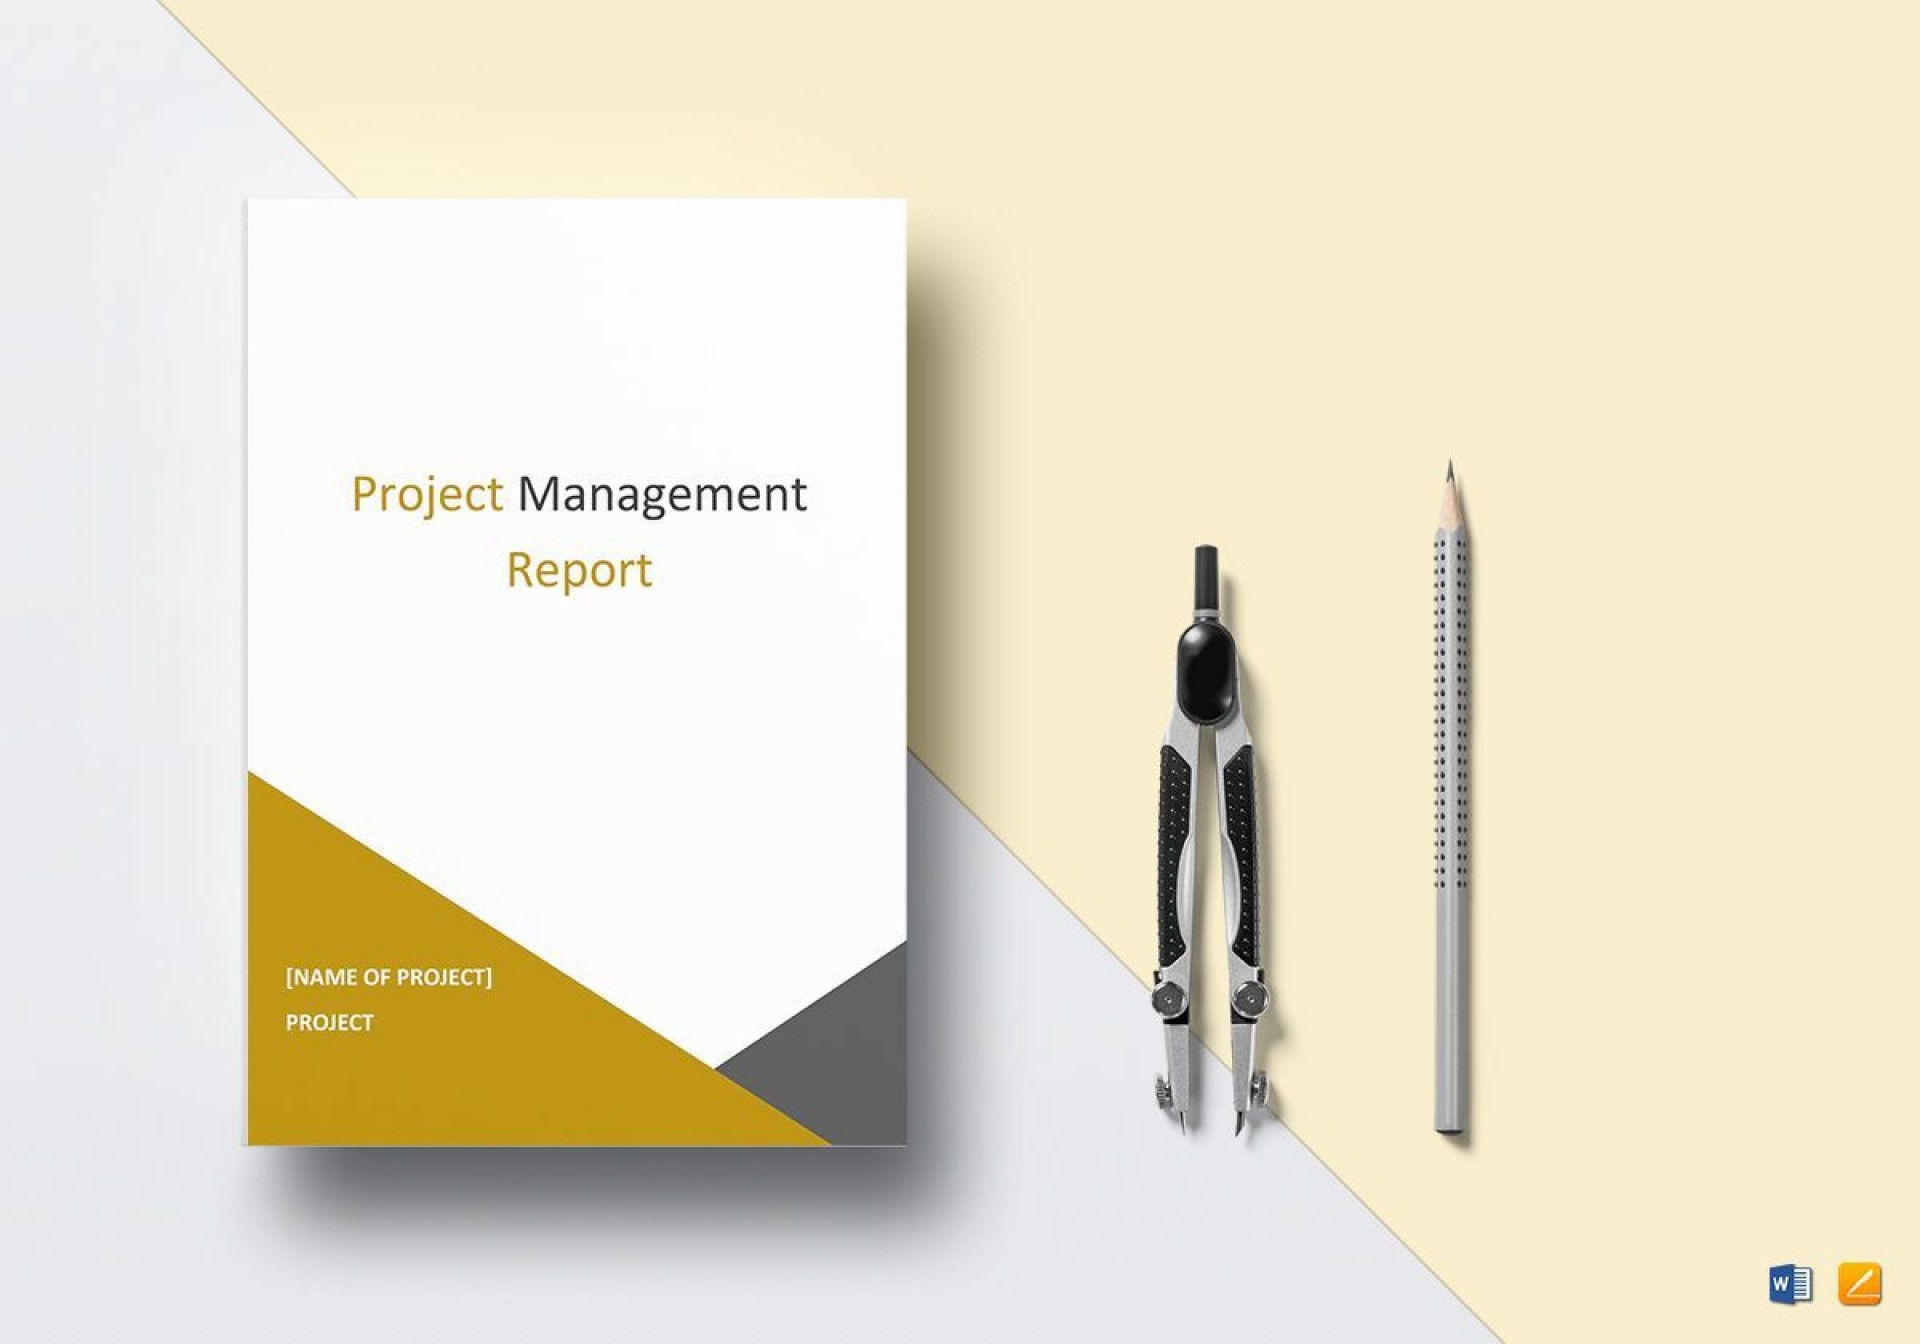 005 Archaicawful Project Management Report Template Word High Definition  Free Statu1920